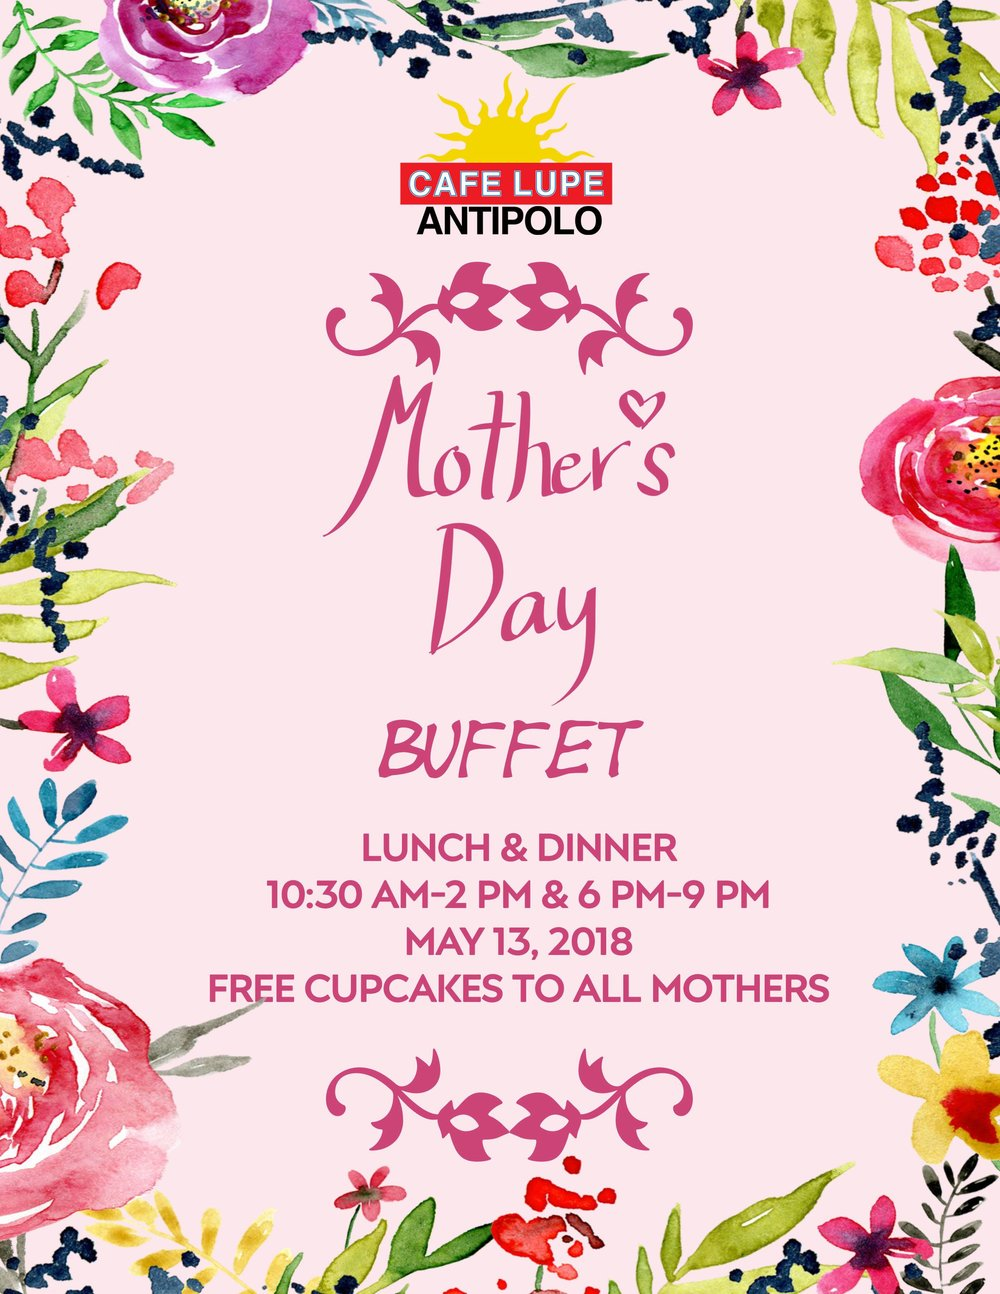 Mother's Day Buffet Event in Cafe Lupe Antipolo